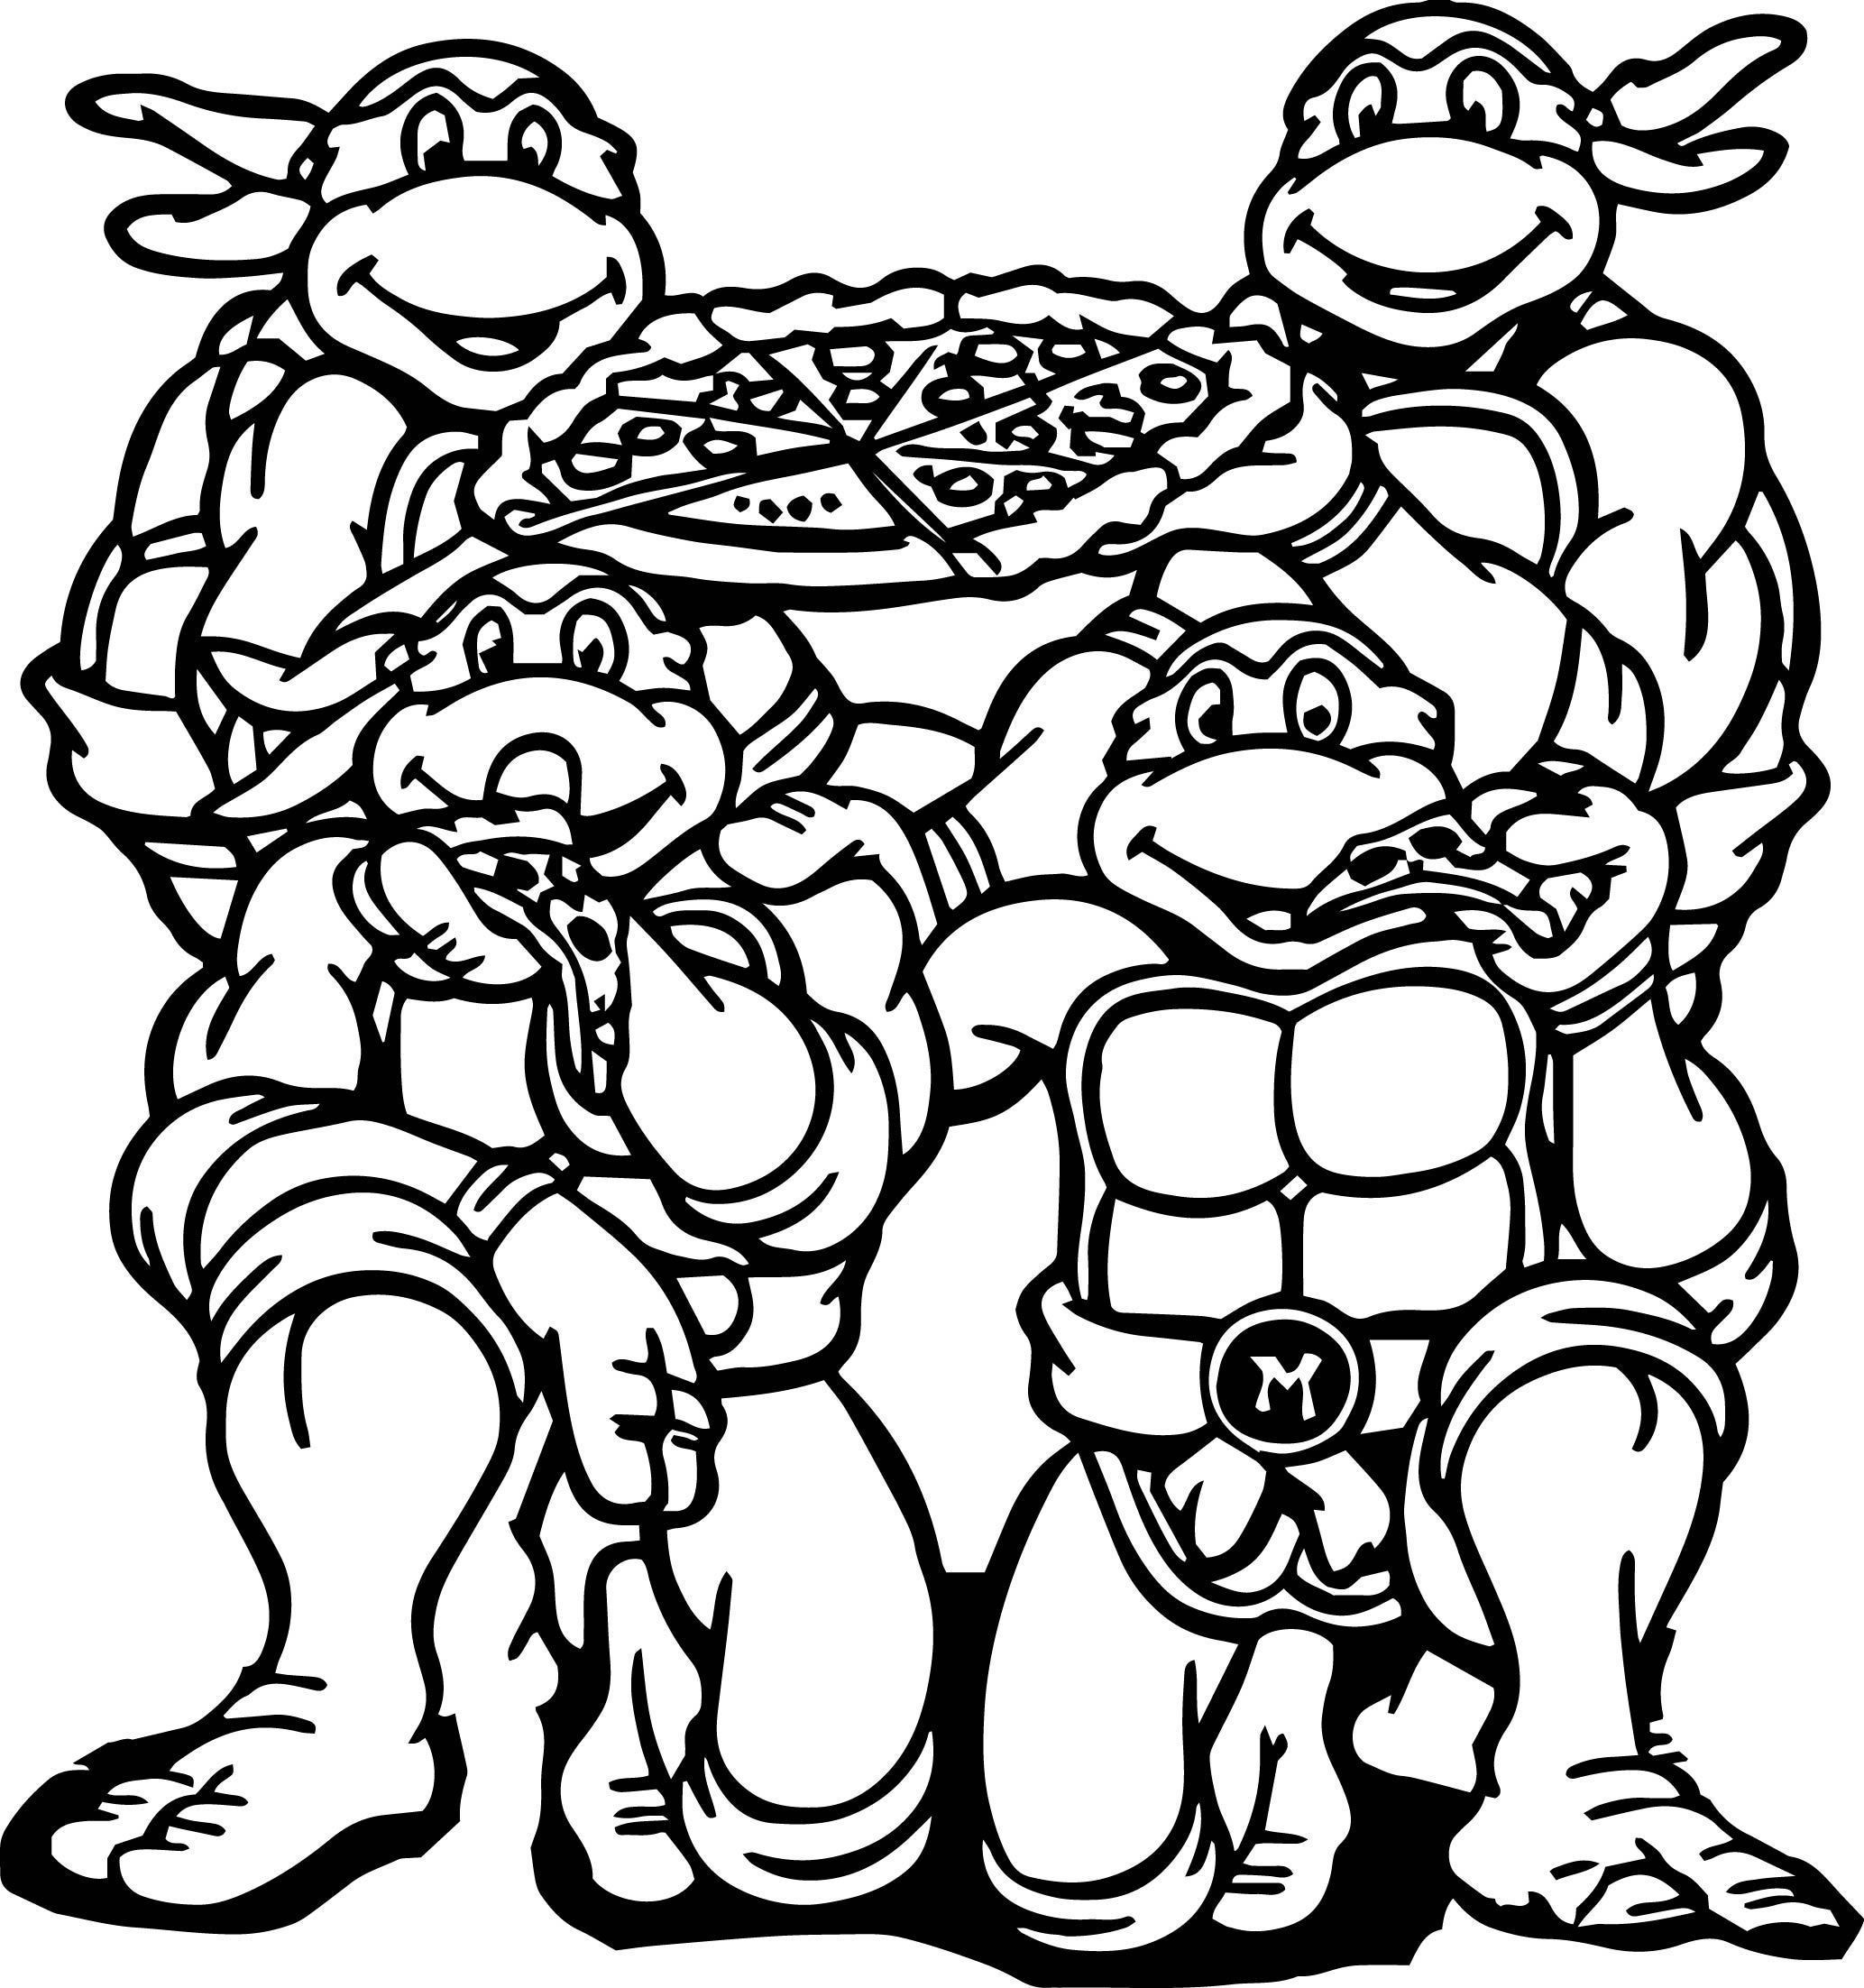 turtles colouring sea turtle coloring pages to download and print for free colouring turtles